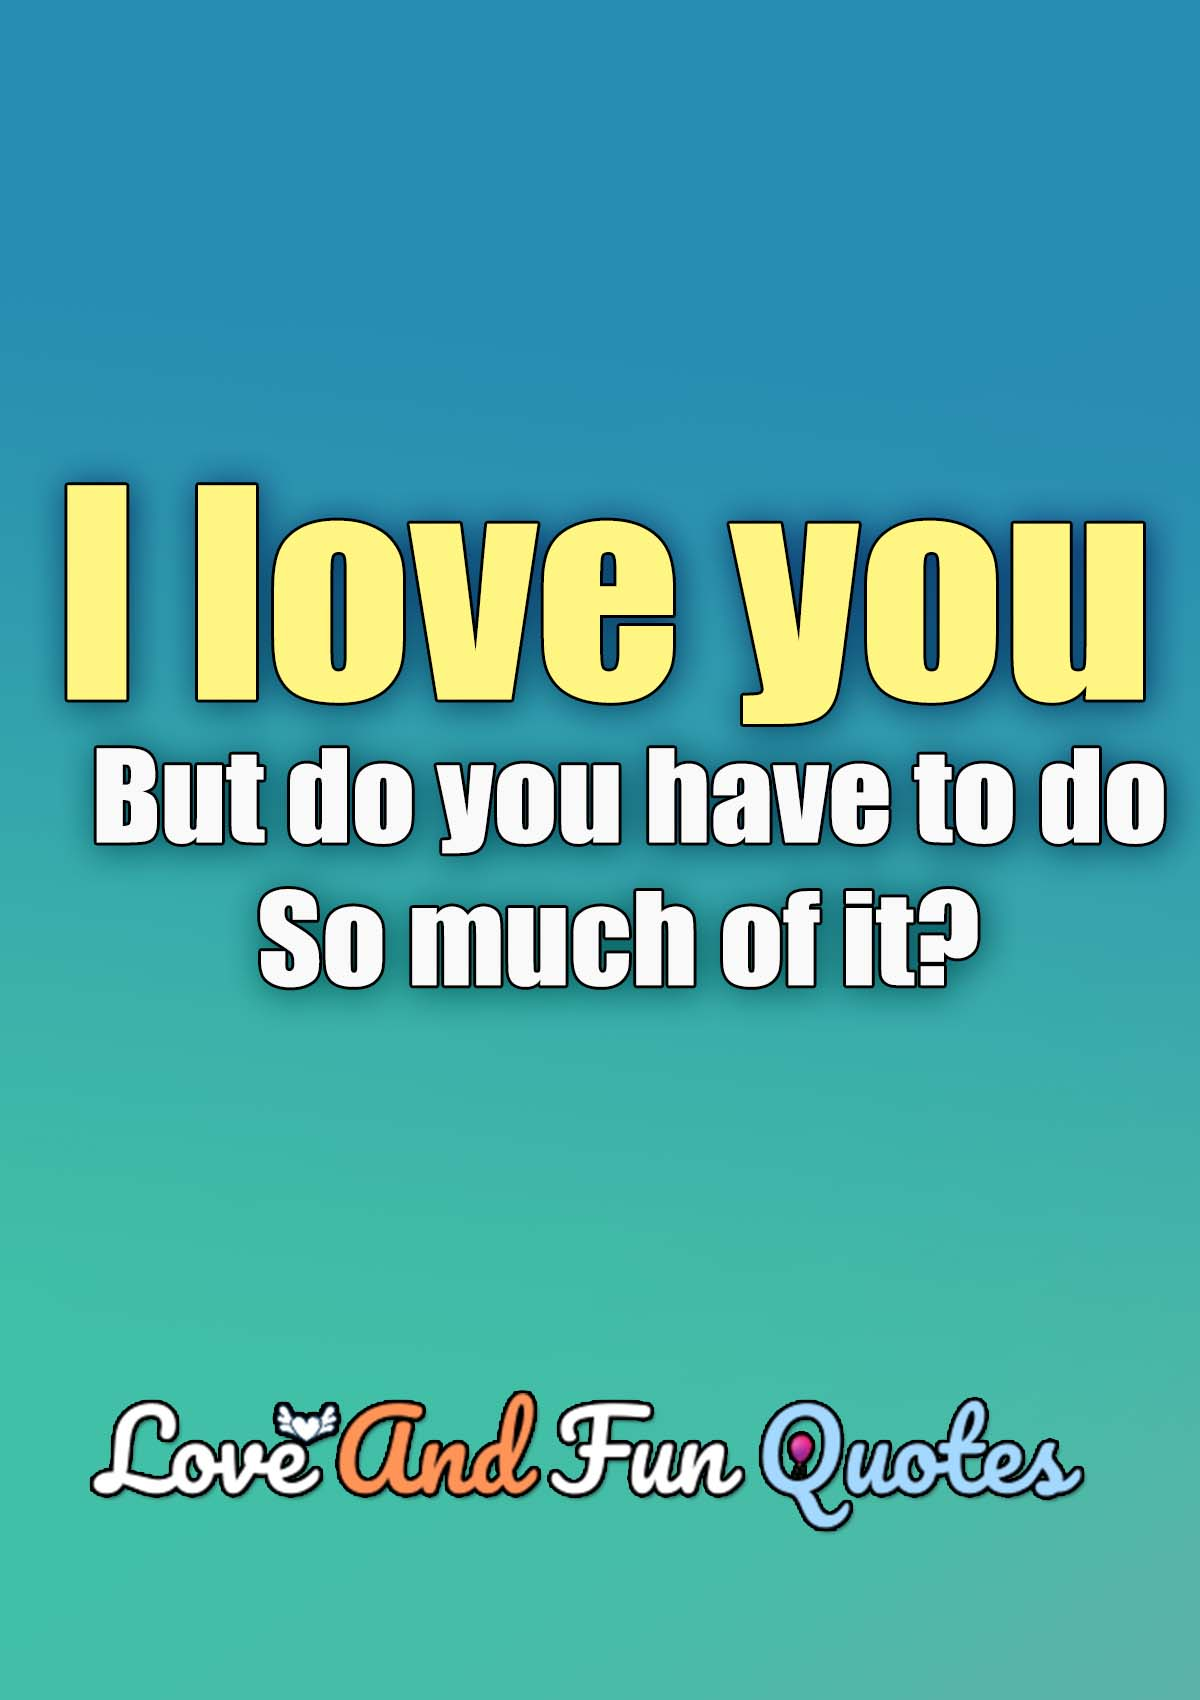 I love you no matter what you do, but do you have to do so much of it?  Jean Illsley Clarke